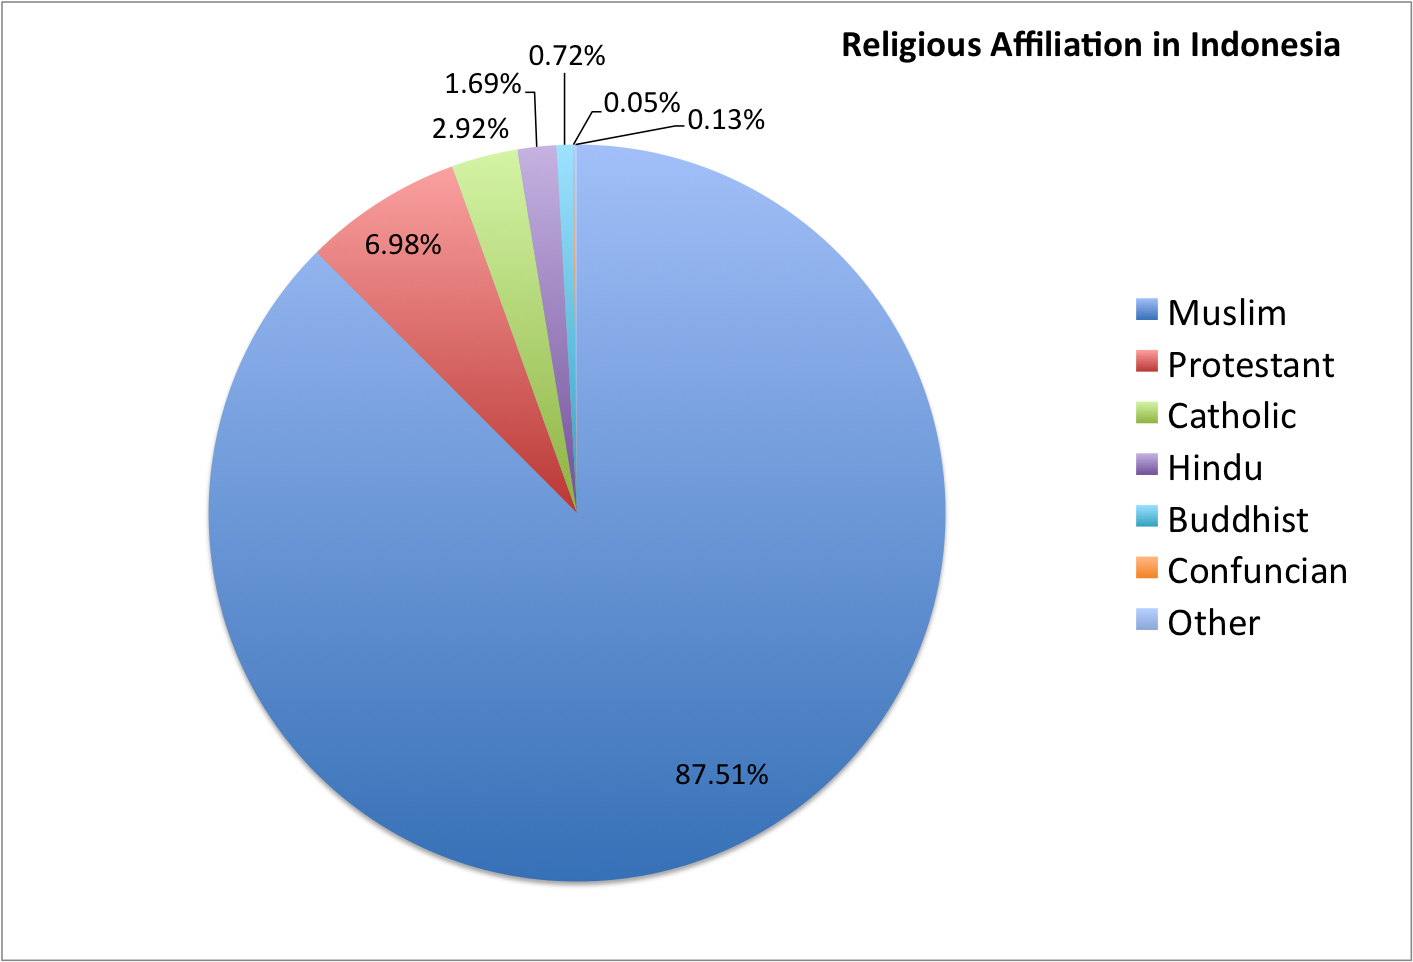 Indonesia religion pie chart gallery free any chart examples indonesia religion pie chart gallery free any chart examples indonesia religion pie chart images free any nvjuhfo Choice Image